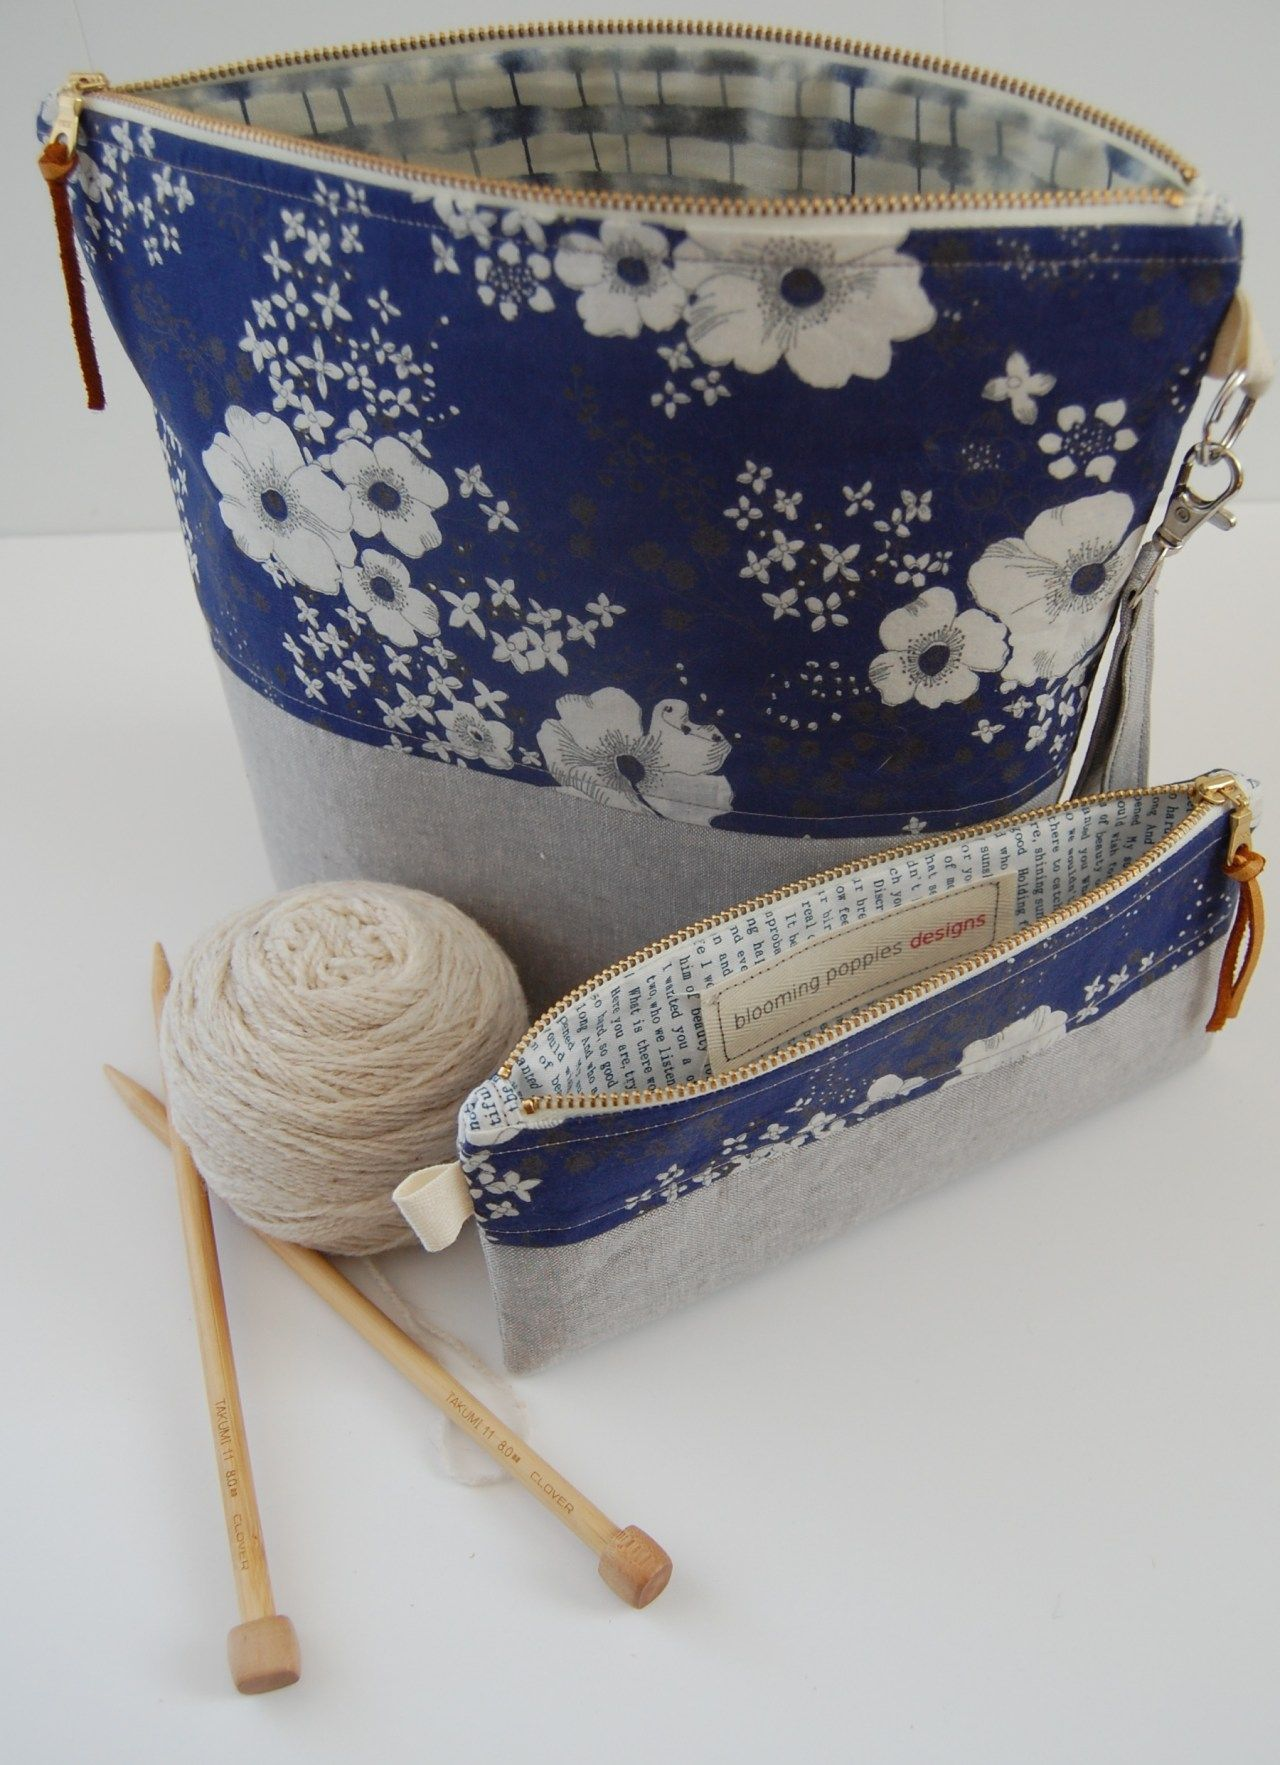 Knitting Bag Sewing Pattern Projects Yarn Bag Sewing ...